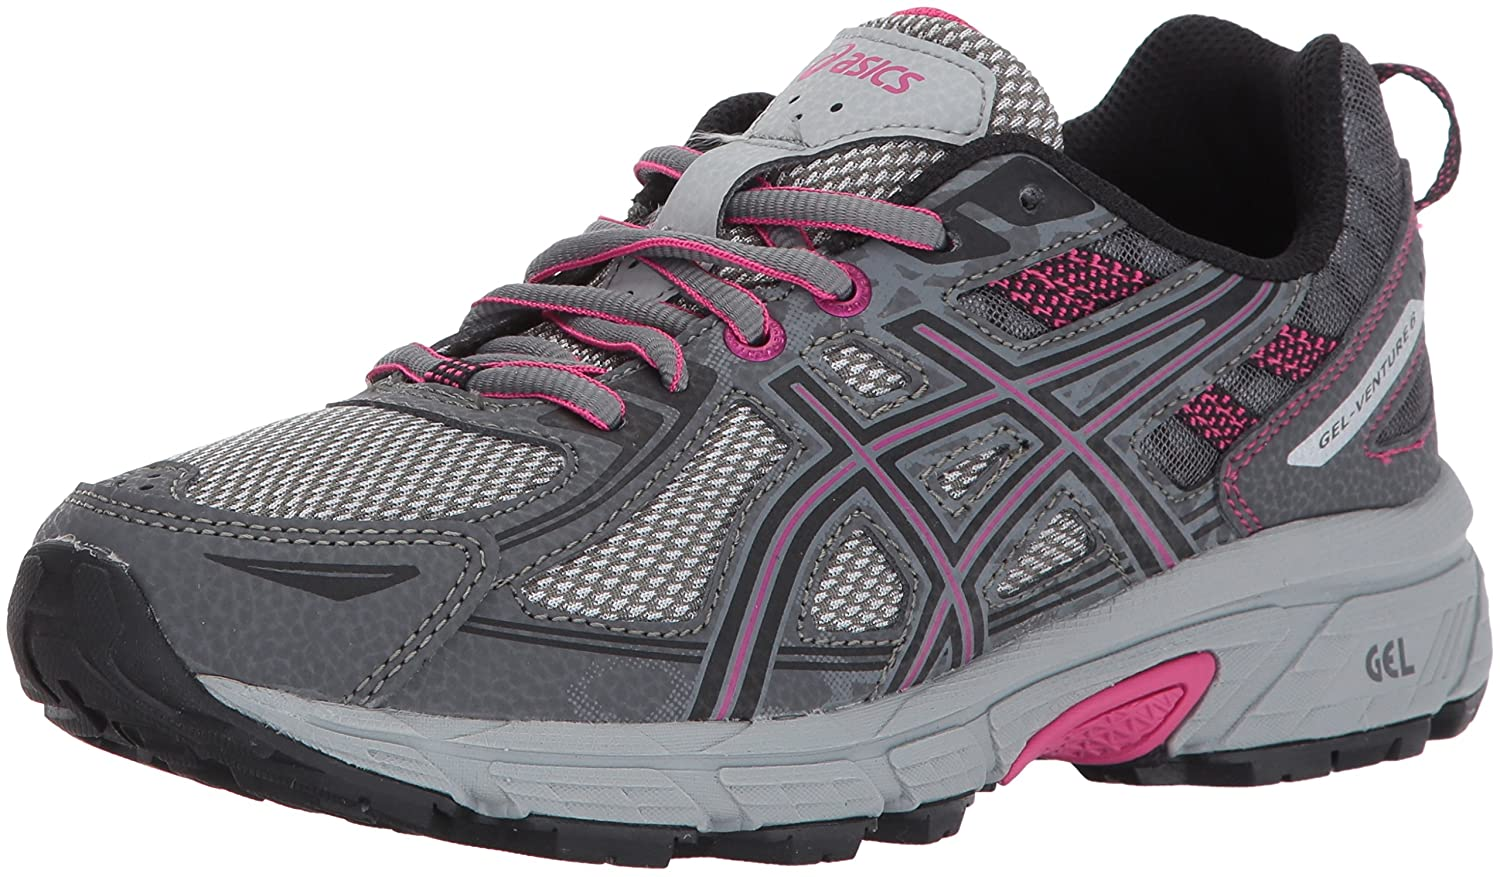 bcc79e12f5 Amazon.com | ASICS Women's Gel-Venture 6 Running-Shoes | Road Running